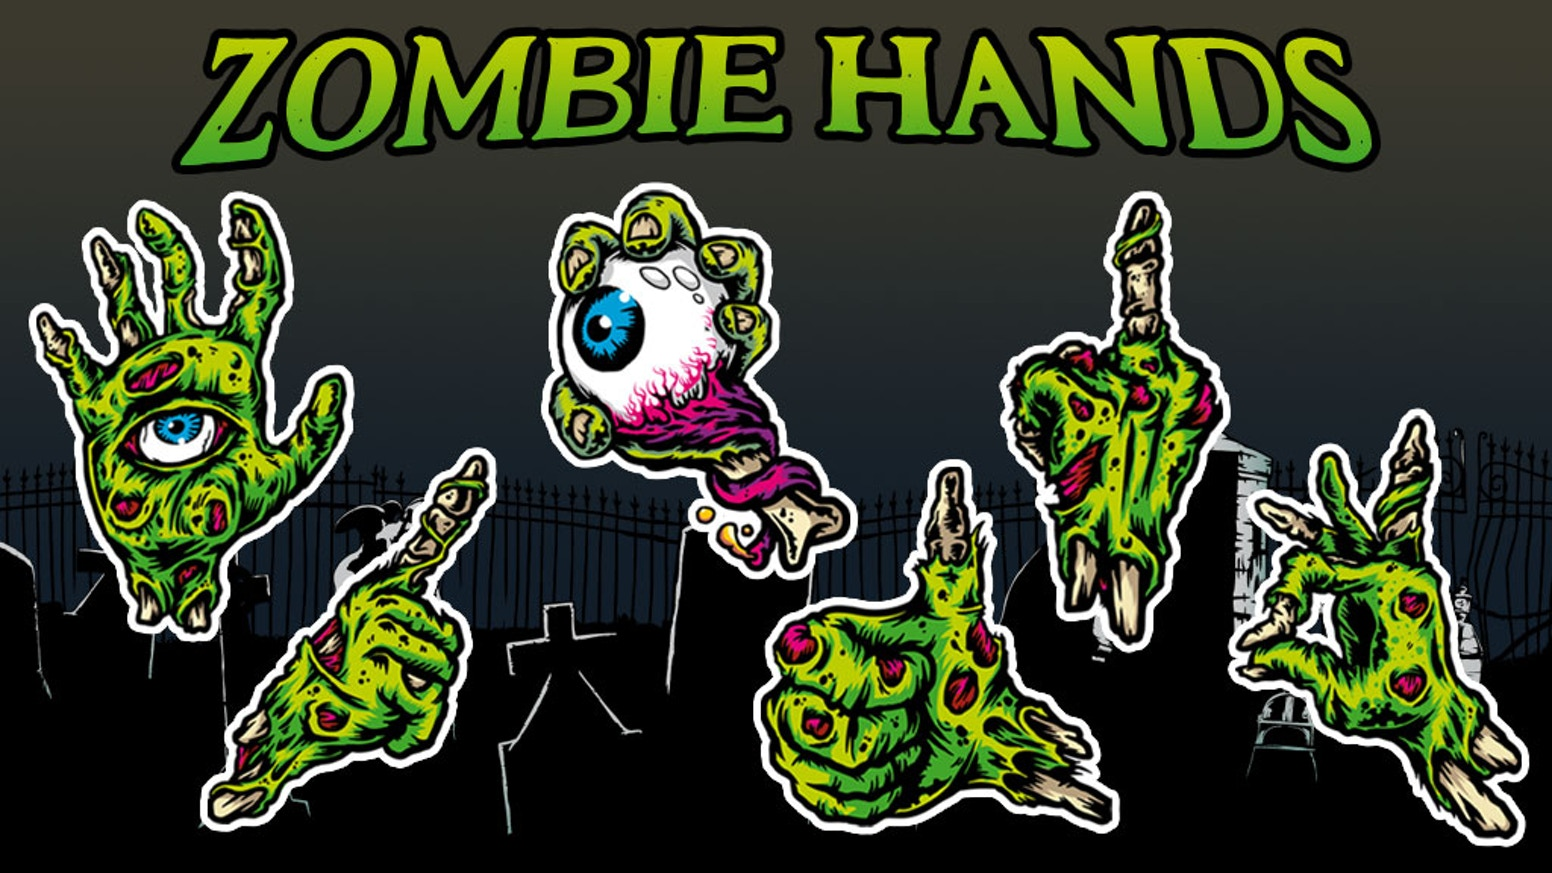 Help me get these limited edition zombie hands vinyl stickers pack and or some